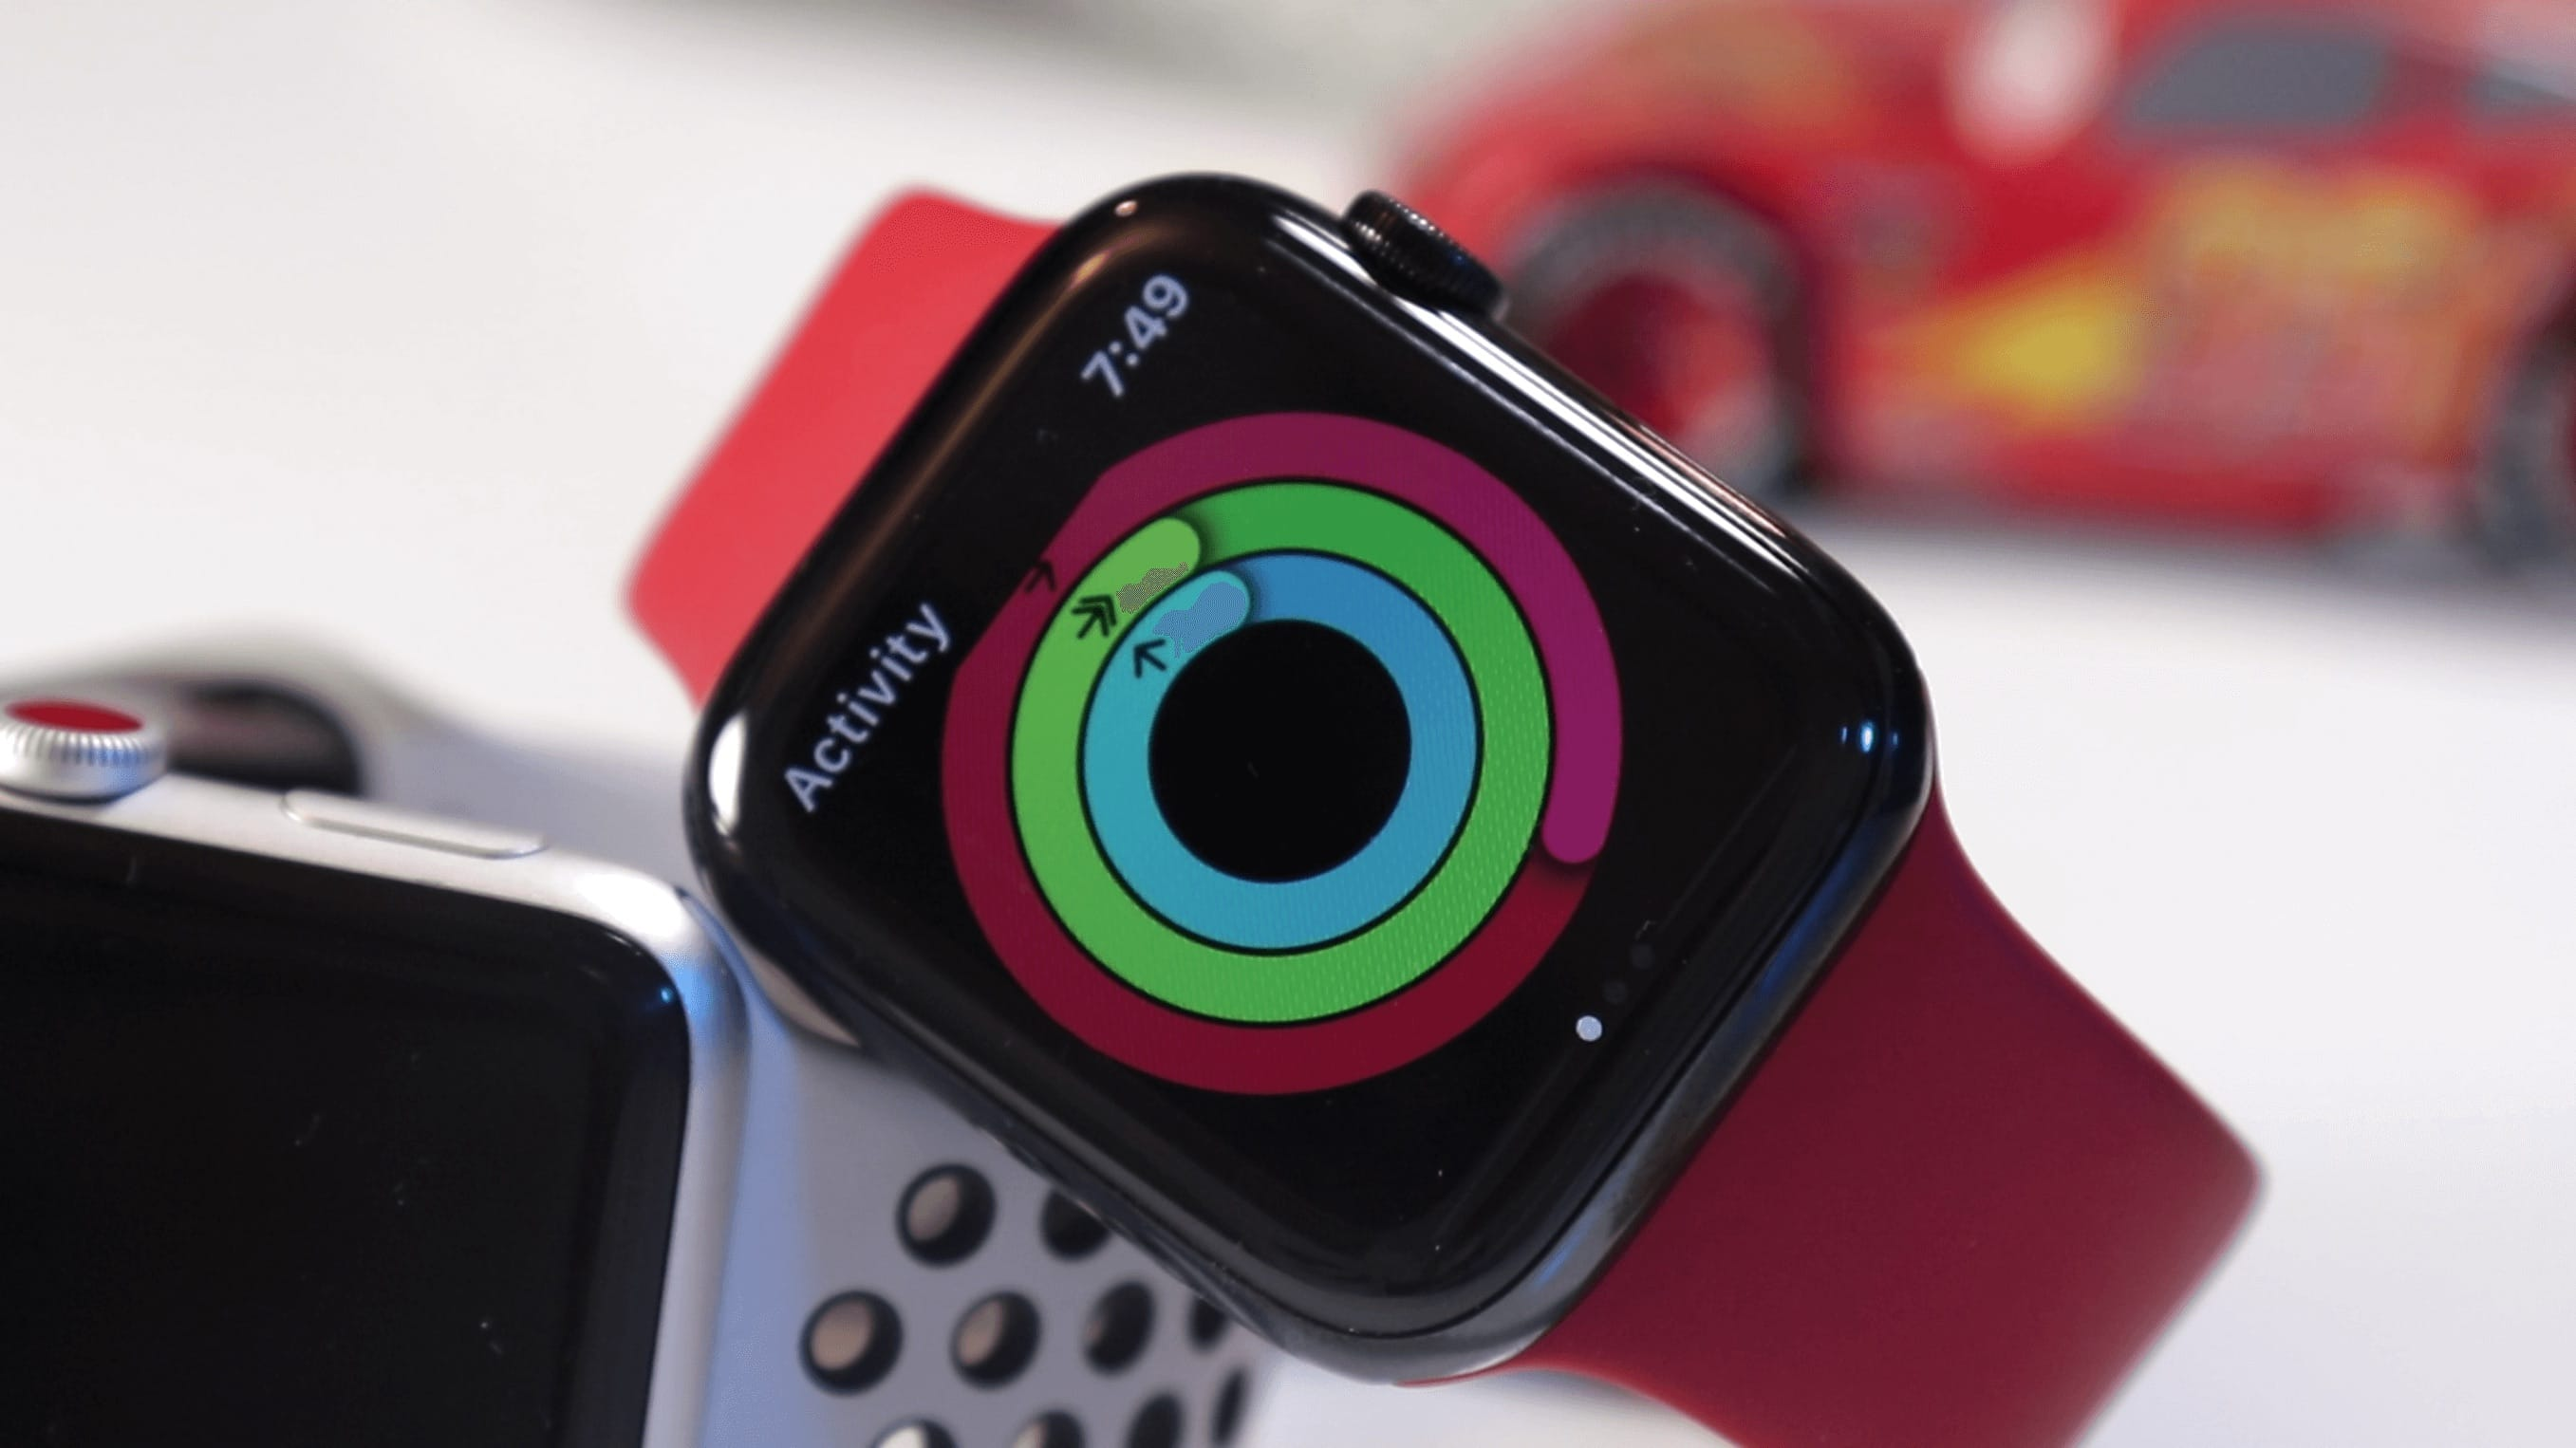 Next Apple Watch Activity challenge will take place on Veterans Day